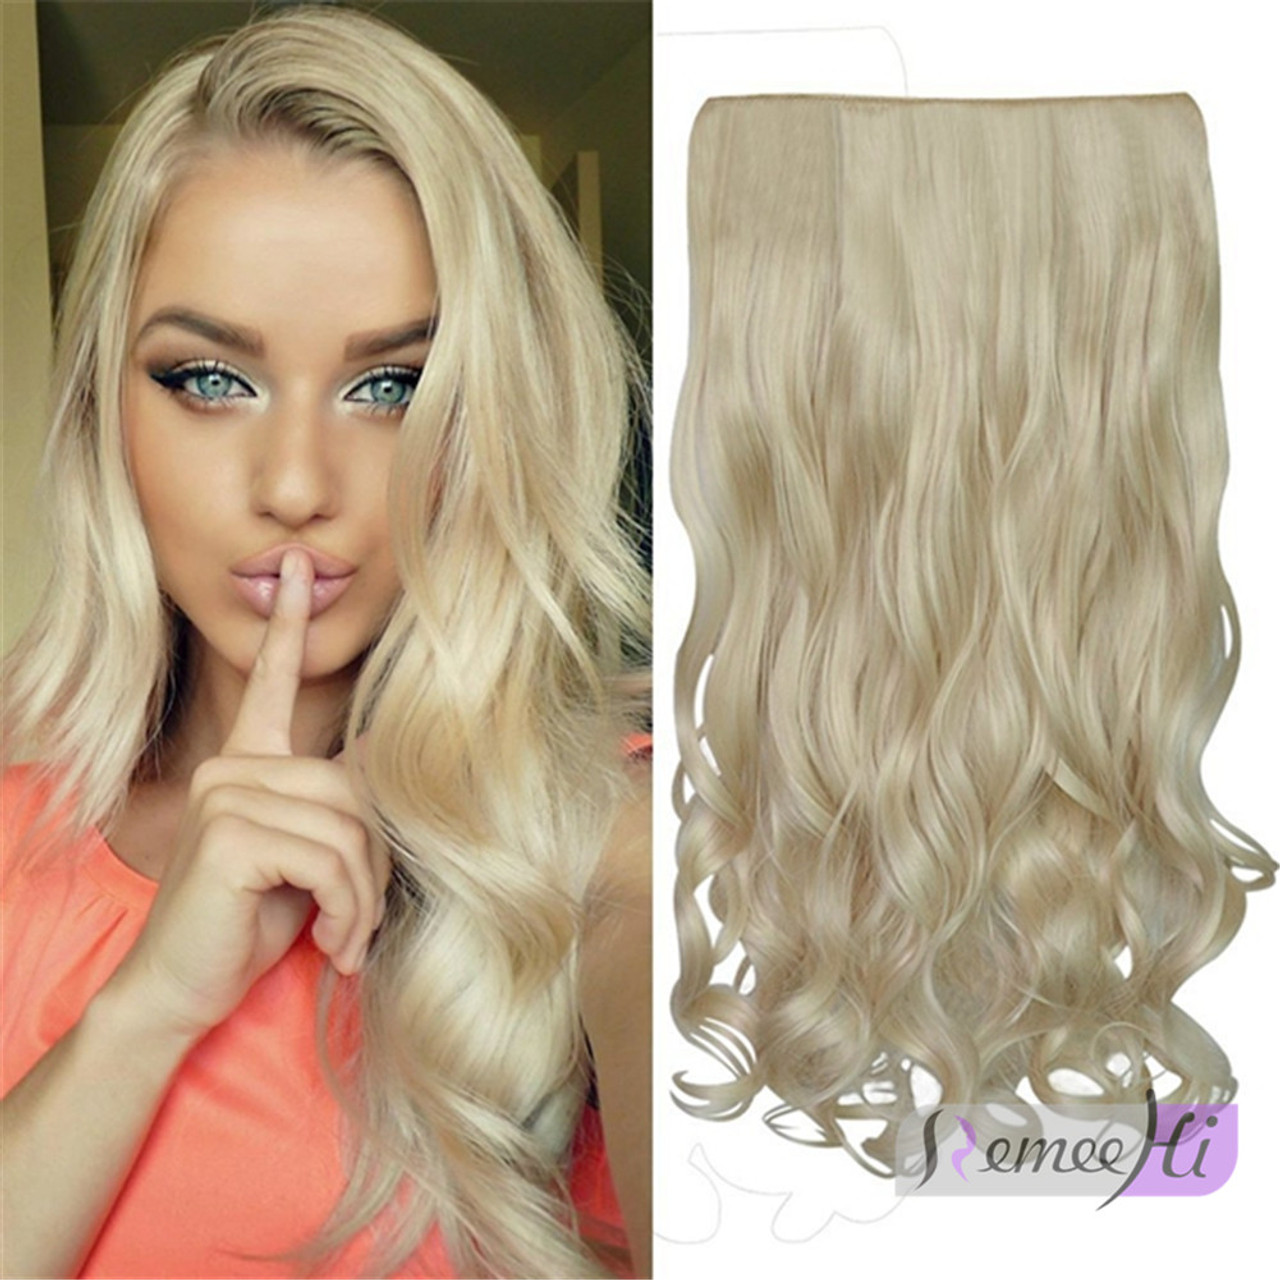 Extensions 25 cm